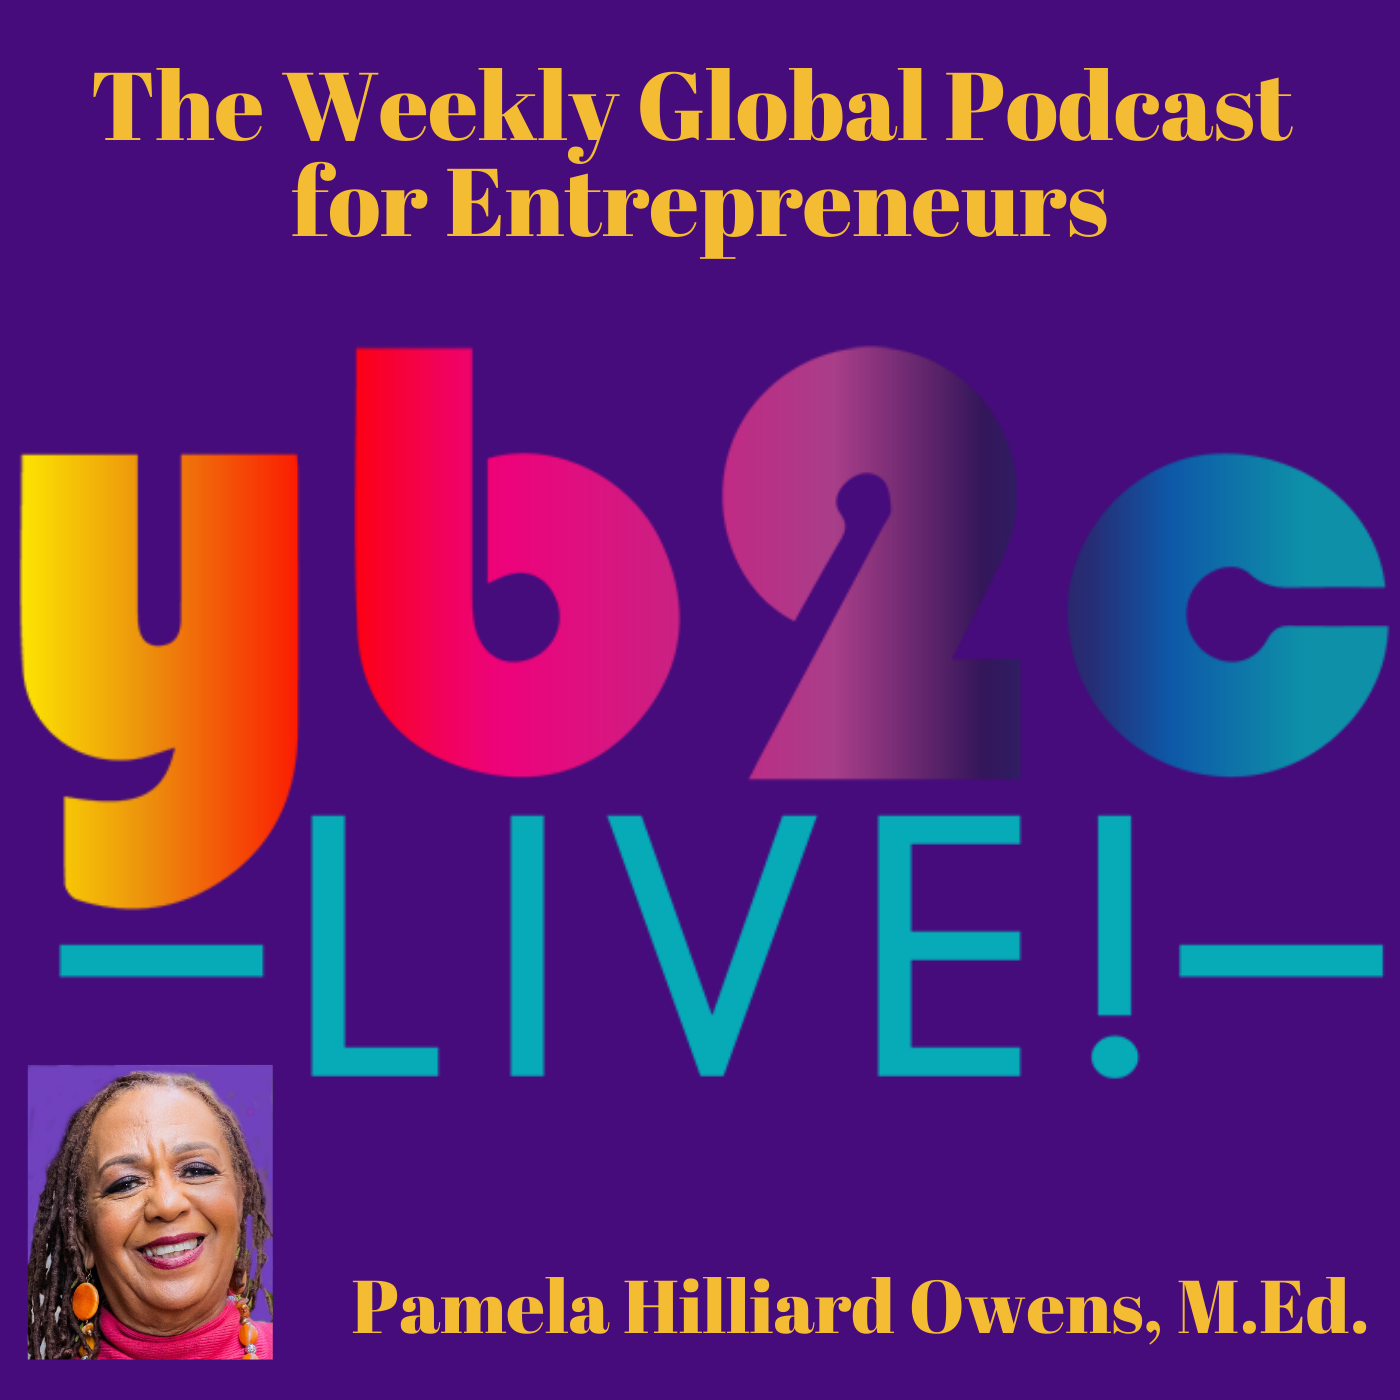 The YB2C Live! Podcast